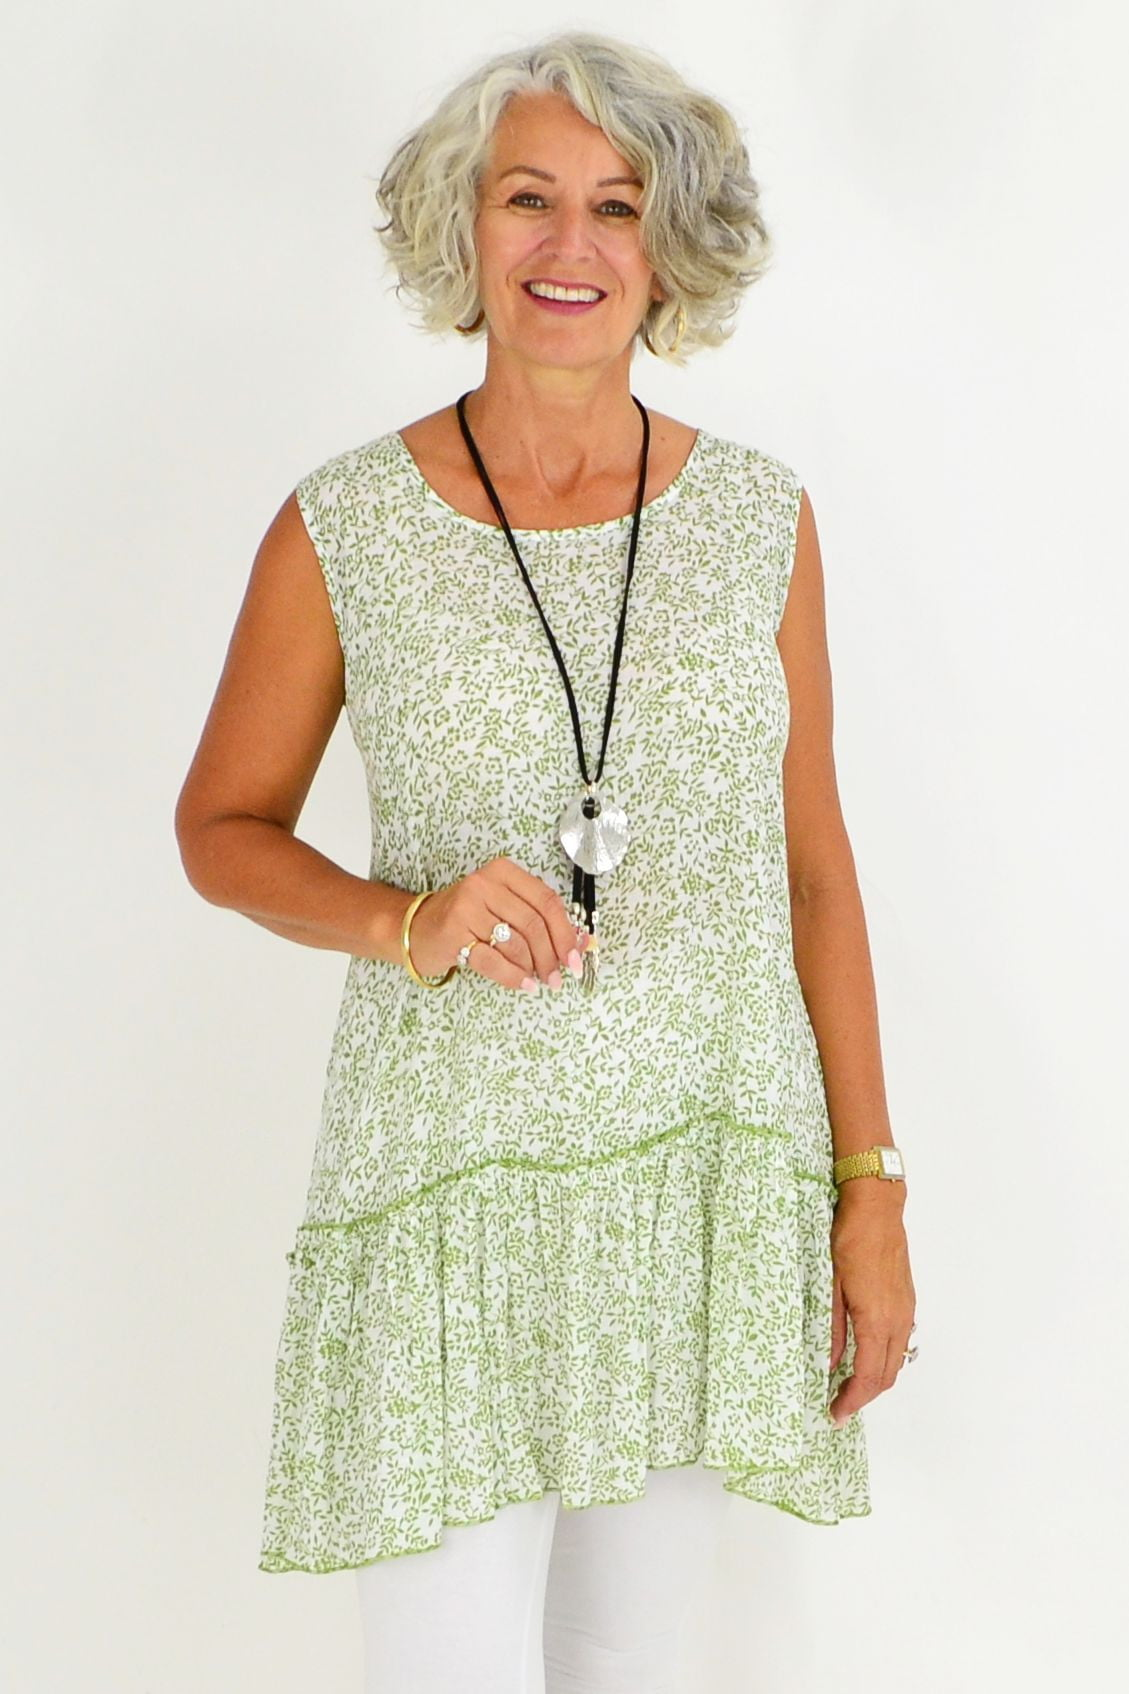 Green Amelia Sleeveless Tunic | I Love Tunics | Tunic Tops | Tunic | Tunic Dresses  | womens clothing online